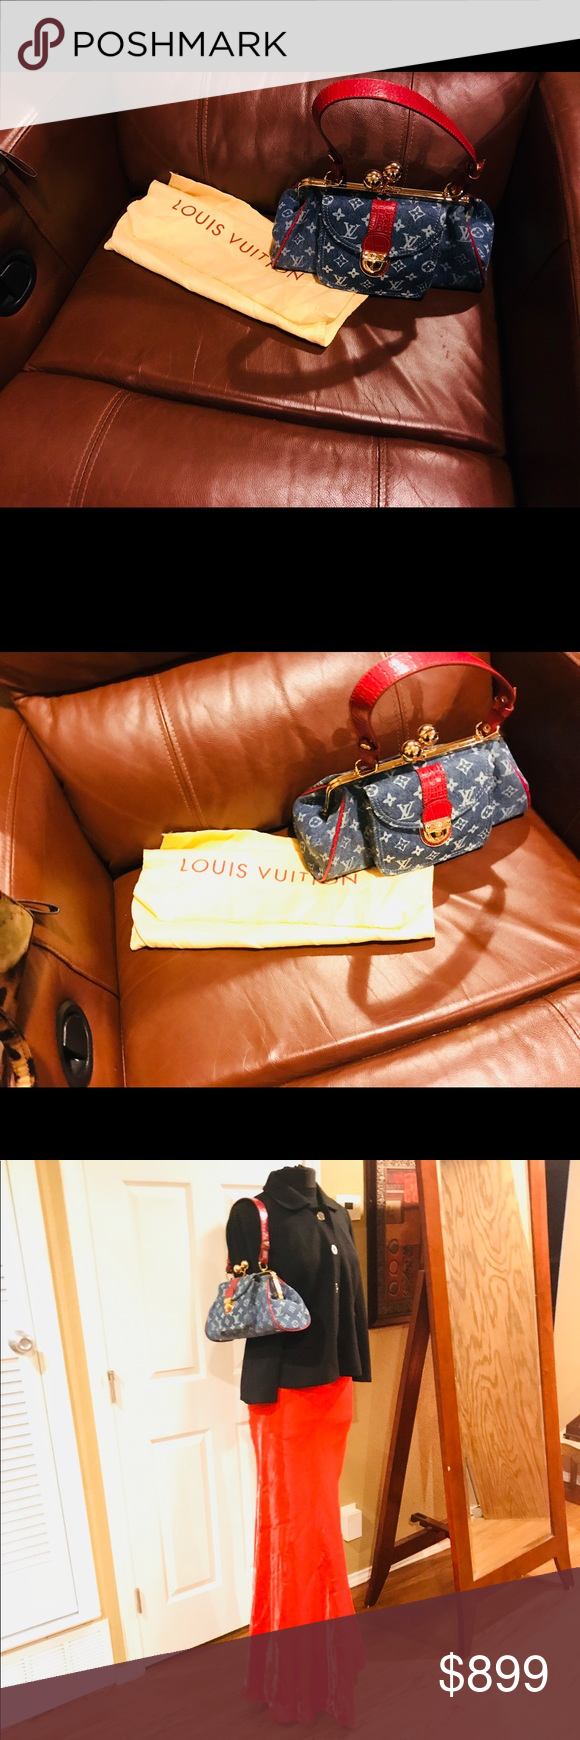 bdc97284afa2 Limited edition Authentic Louis Vuitton Authentic Louis Vuitton Monogram  Alligator Fermoir GM Denim   Red Baguette in Blue Red. Smoke   pet free.  Dust bag ...